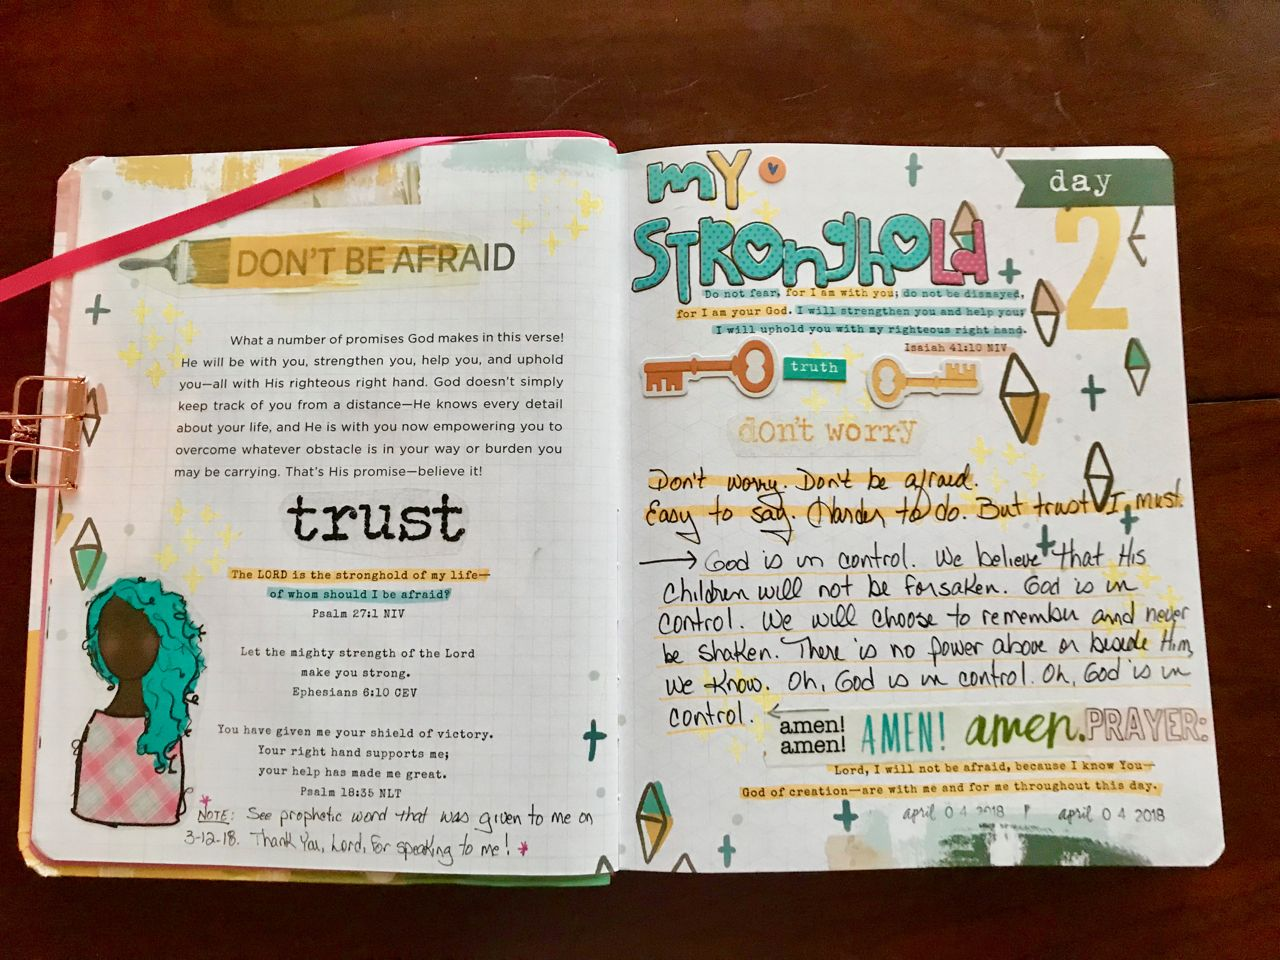 2 100 Fear Not God Is My Stronghold And So I Need Not Be Afraid I Can Trust Him In Every Moment Of Every Day Bible Promises Soap Bible Study Illustrated Faith